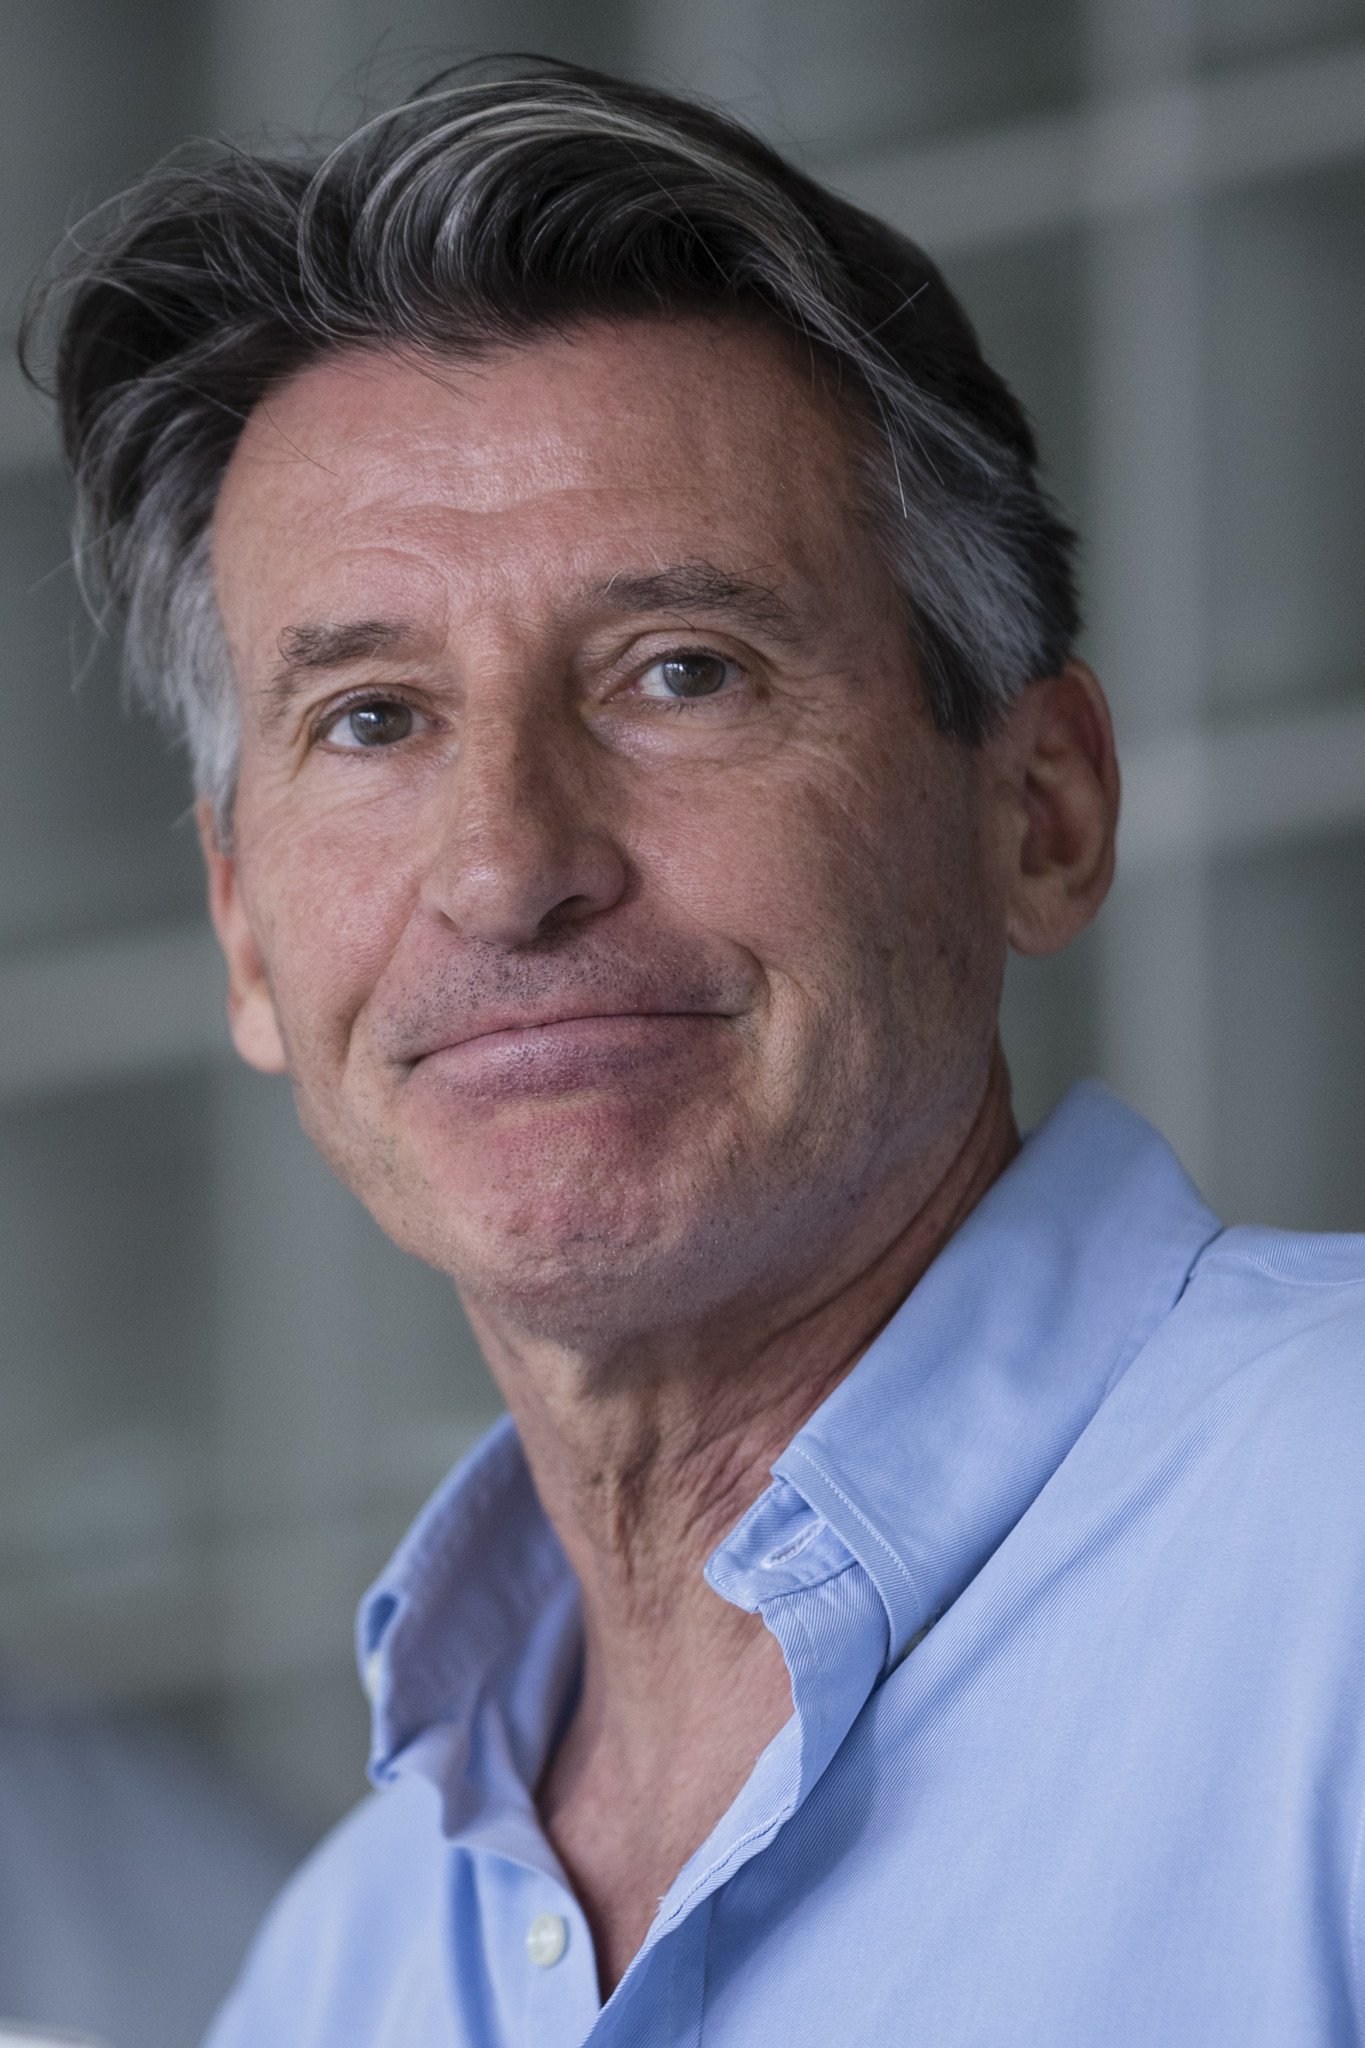 IAAF President Sebastian Coe has emphasised that the analysis of samples from the Moscow Laboratory, upon which the reinstatement of the Russian Athletics Federation partly depends, will be a lengthy business ©Getty Images